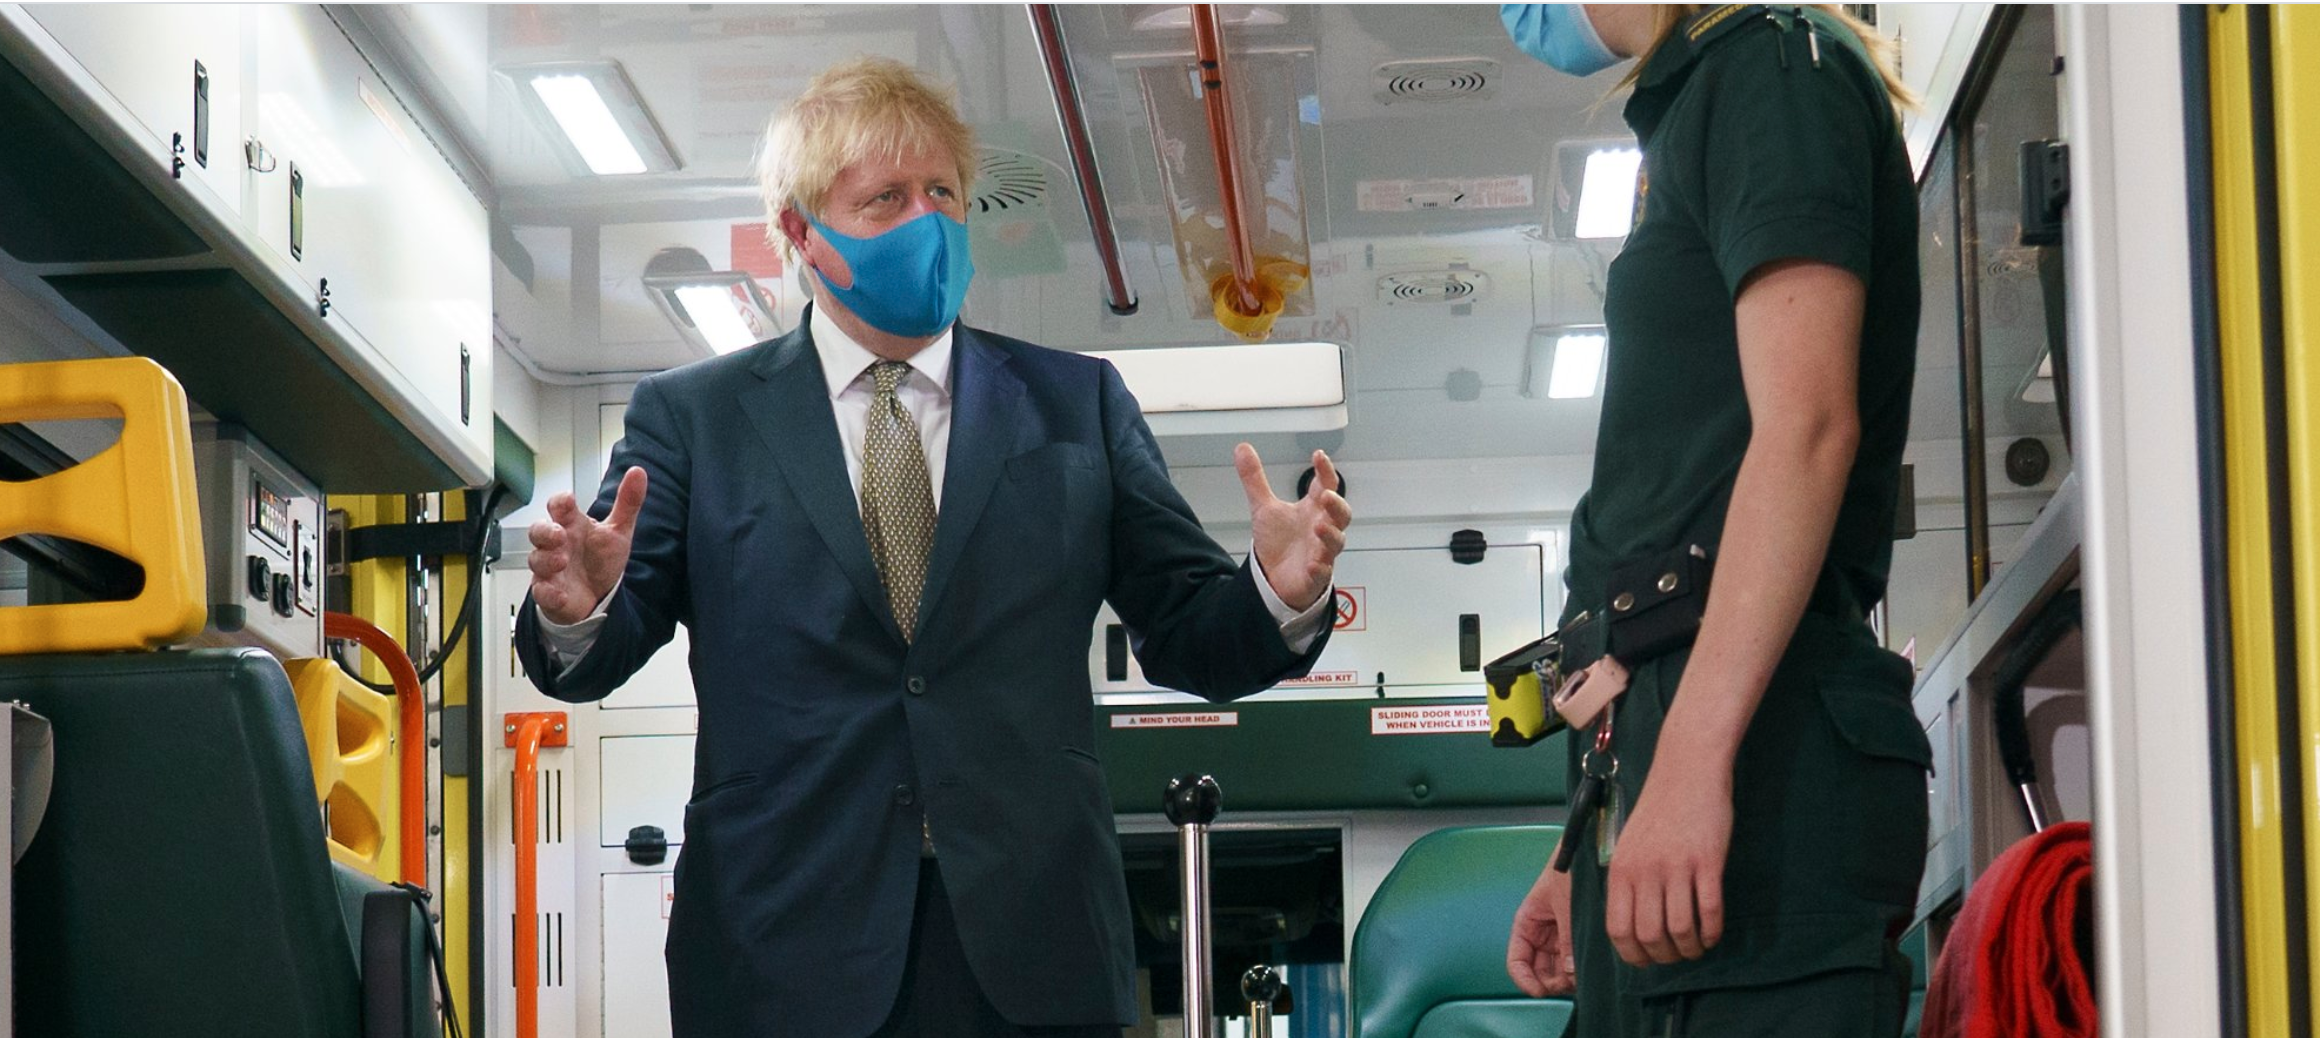 Above: There has been a bit of dilly-dallying by the Government on the face covering issue, but PM Boris Johnson is now ramming home the message that wearing them will help spread Covid-19.